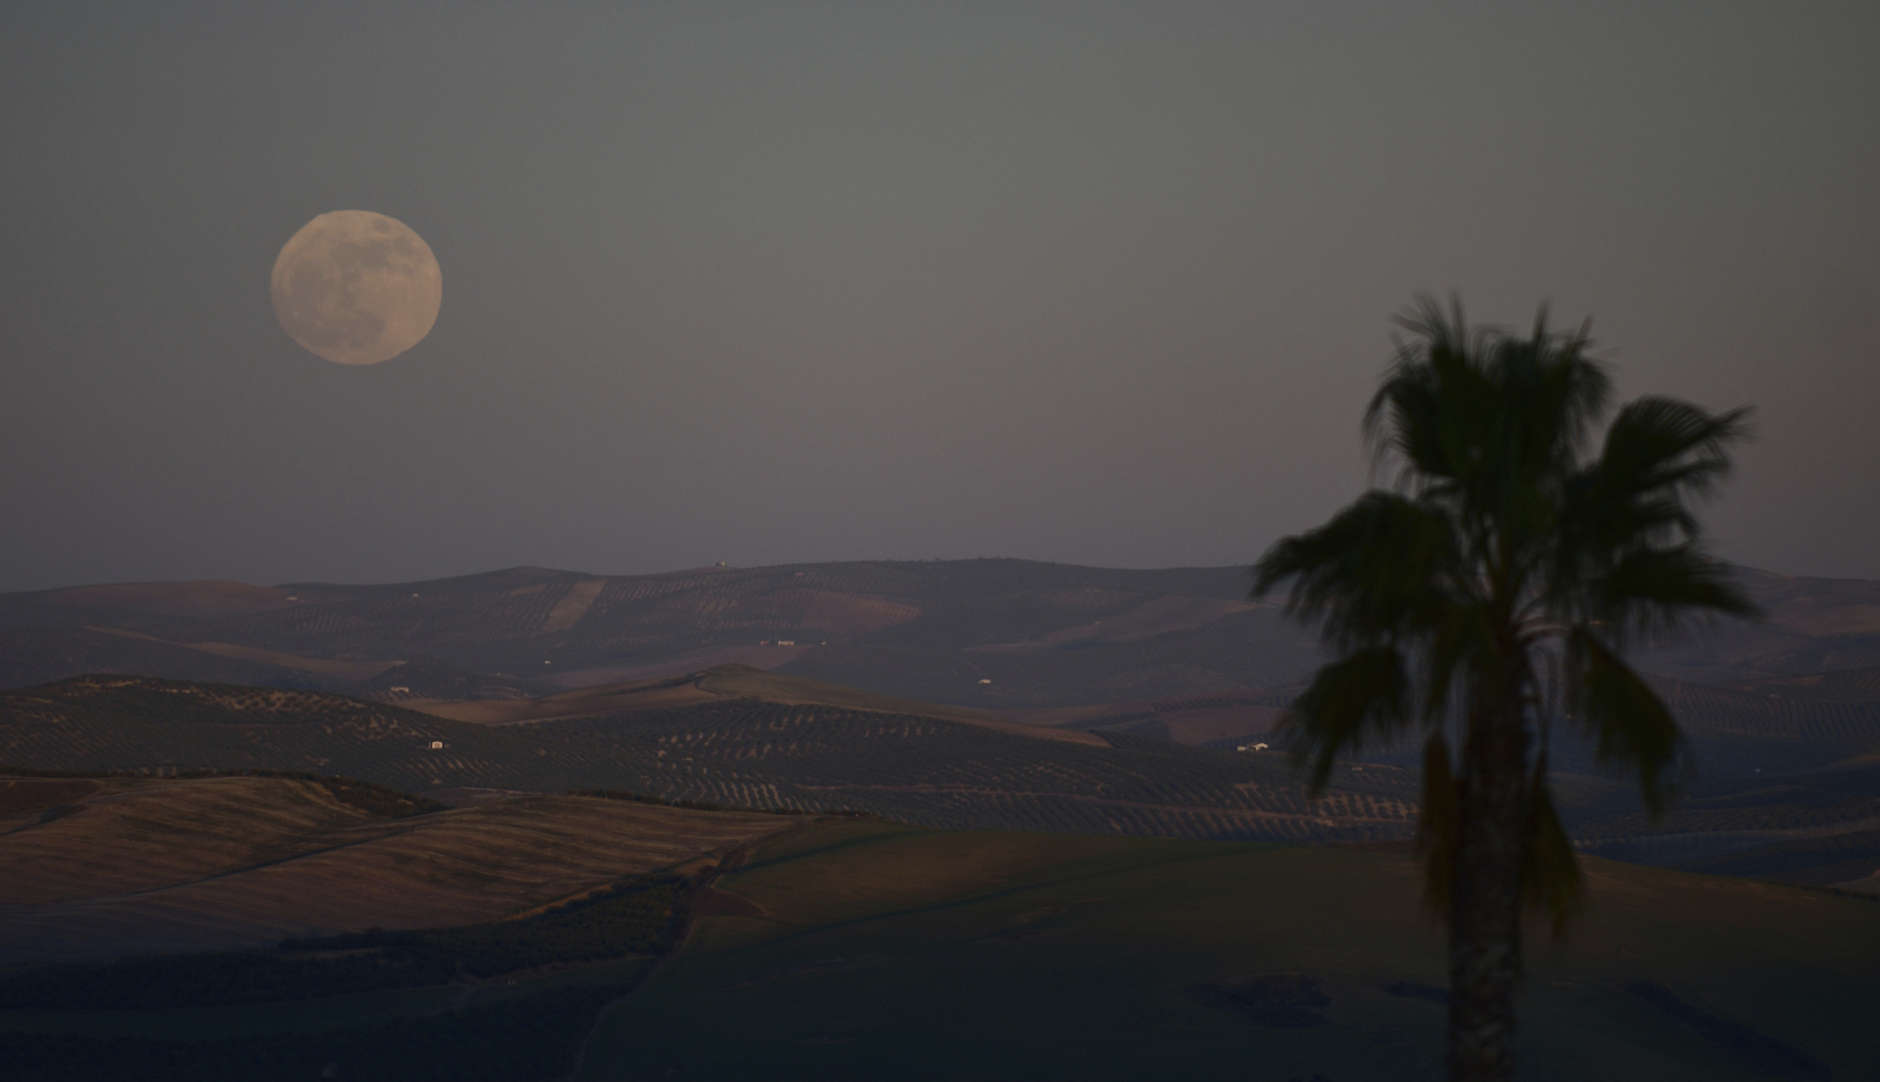 """The first supermoon of 2018, seen from the countryside in Montemayor near of Cordoba, southern Spain, Monday, Jan. 1, 2018. A """"supermoon"""" occurs when the moon appears bigger and brighter in the sky. (AP Photo/Manu Fernandez)"""